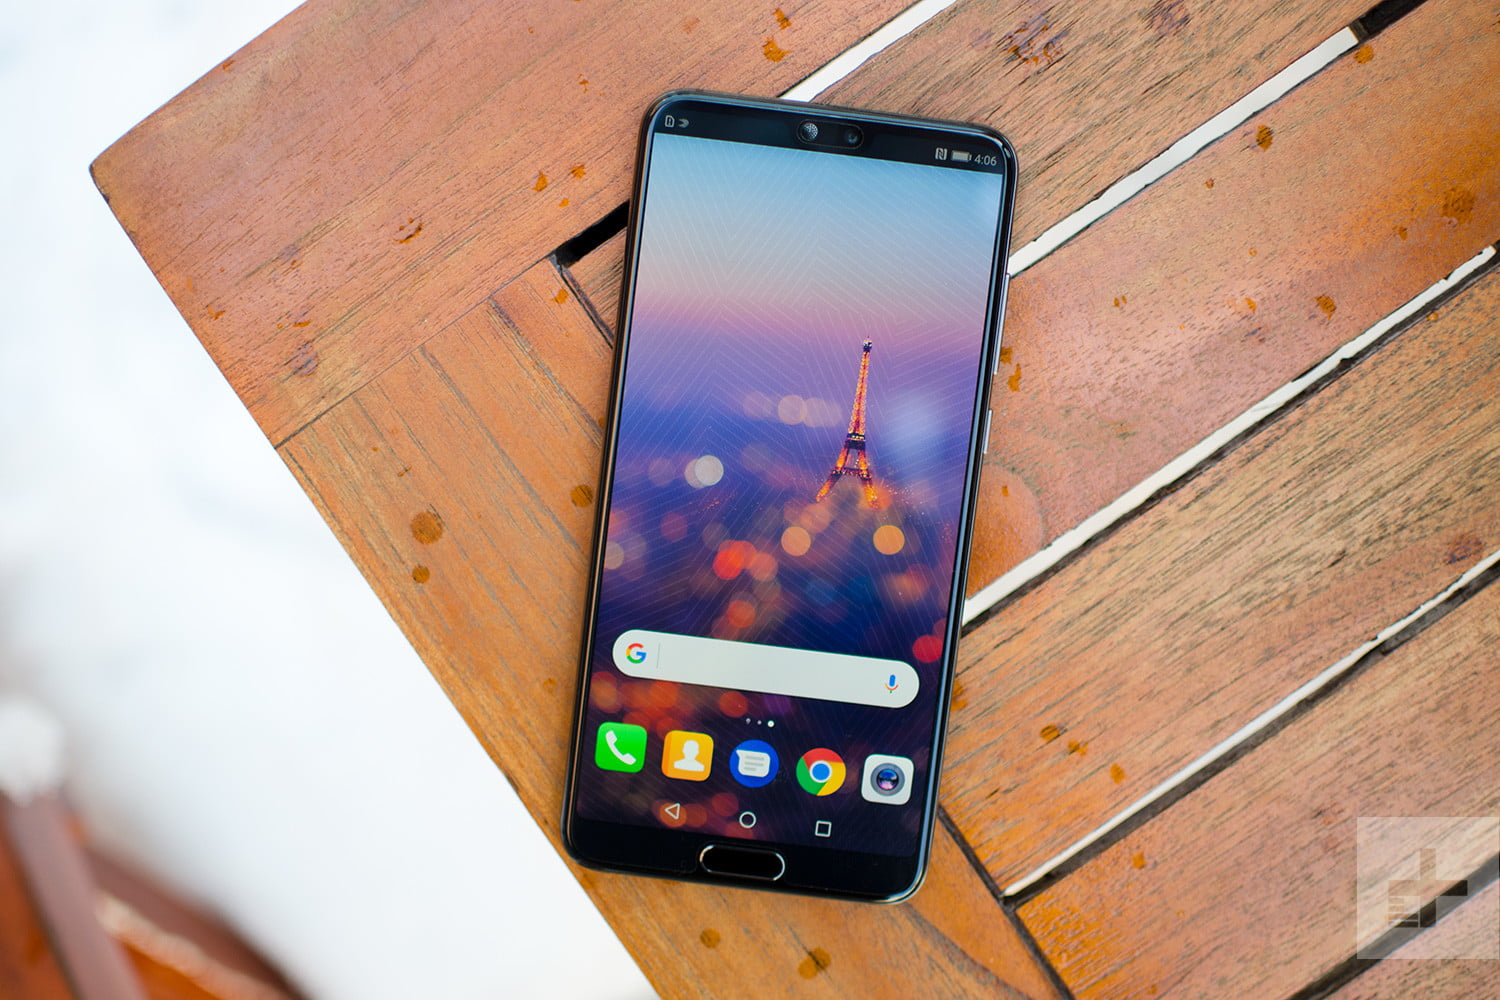 Block phone number on cell phone | Future Samsung phone might get face-scanning camera, like iPhone X